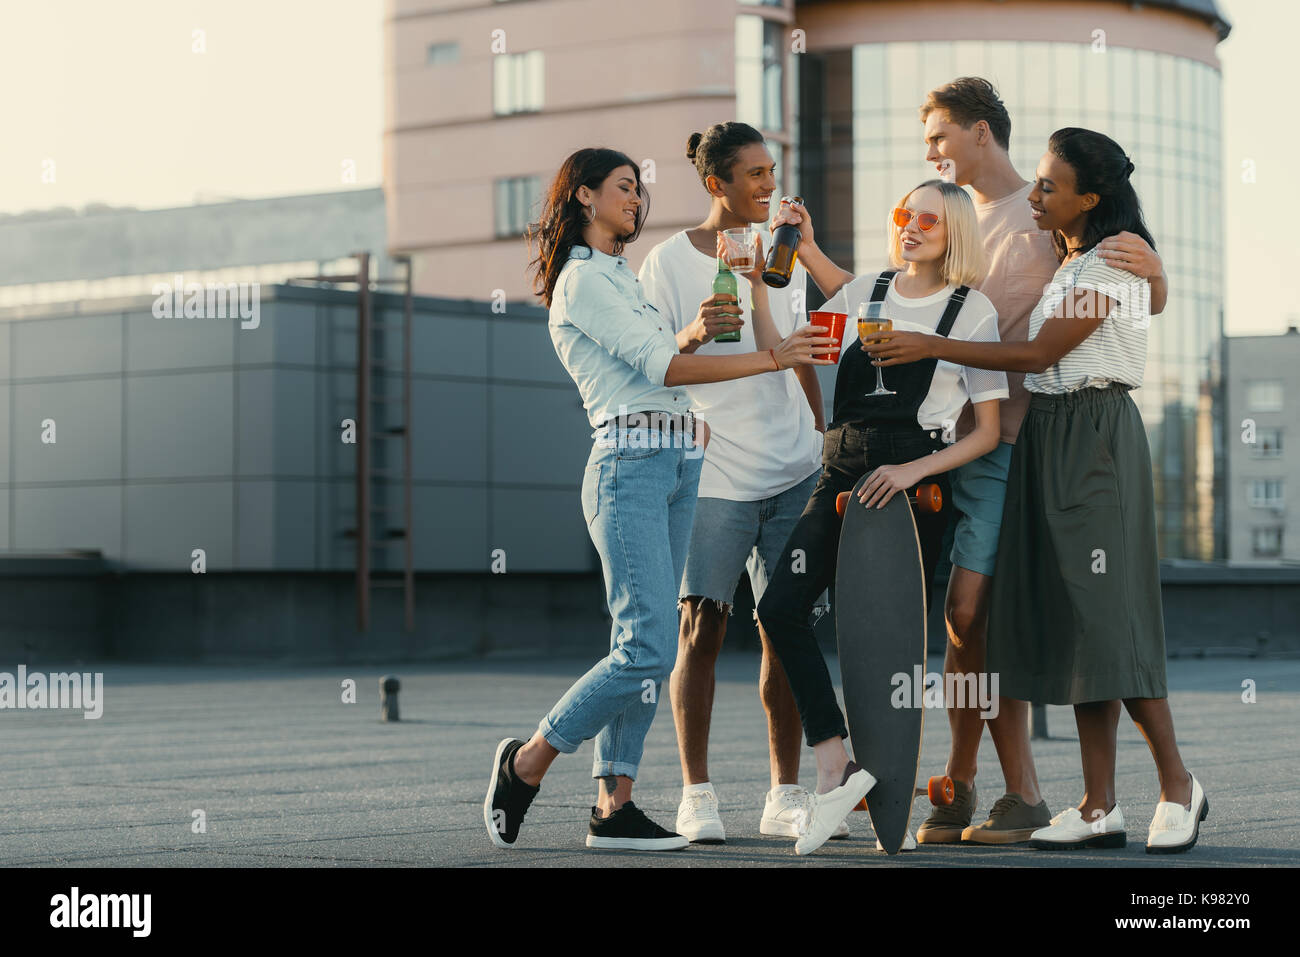 Group Of People Drinking Alcohol Stock Photos & Group Of ...